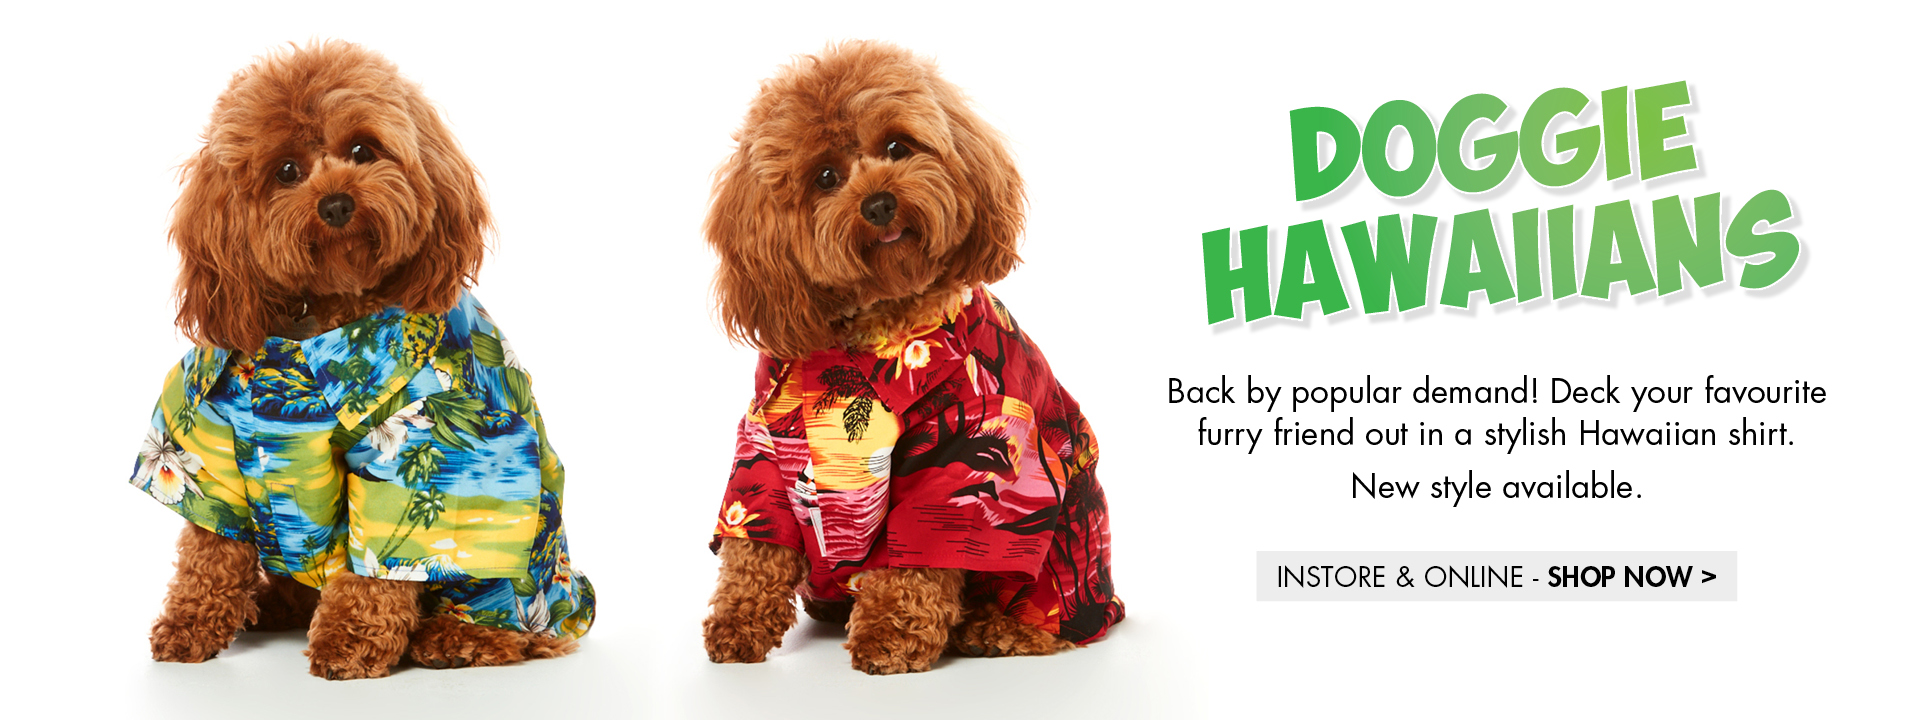 Doggy Hawaiians